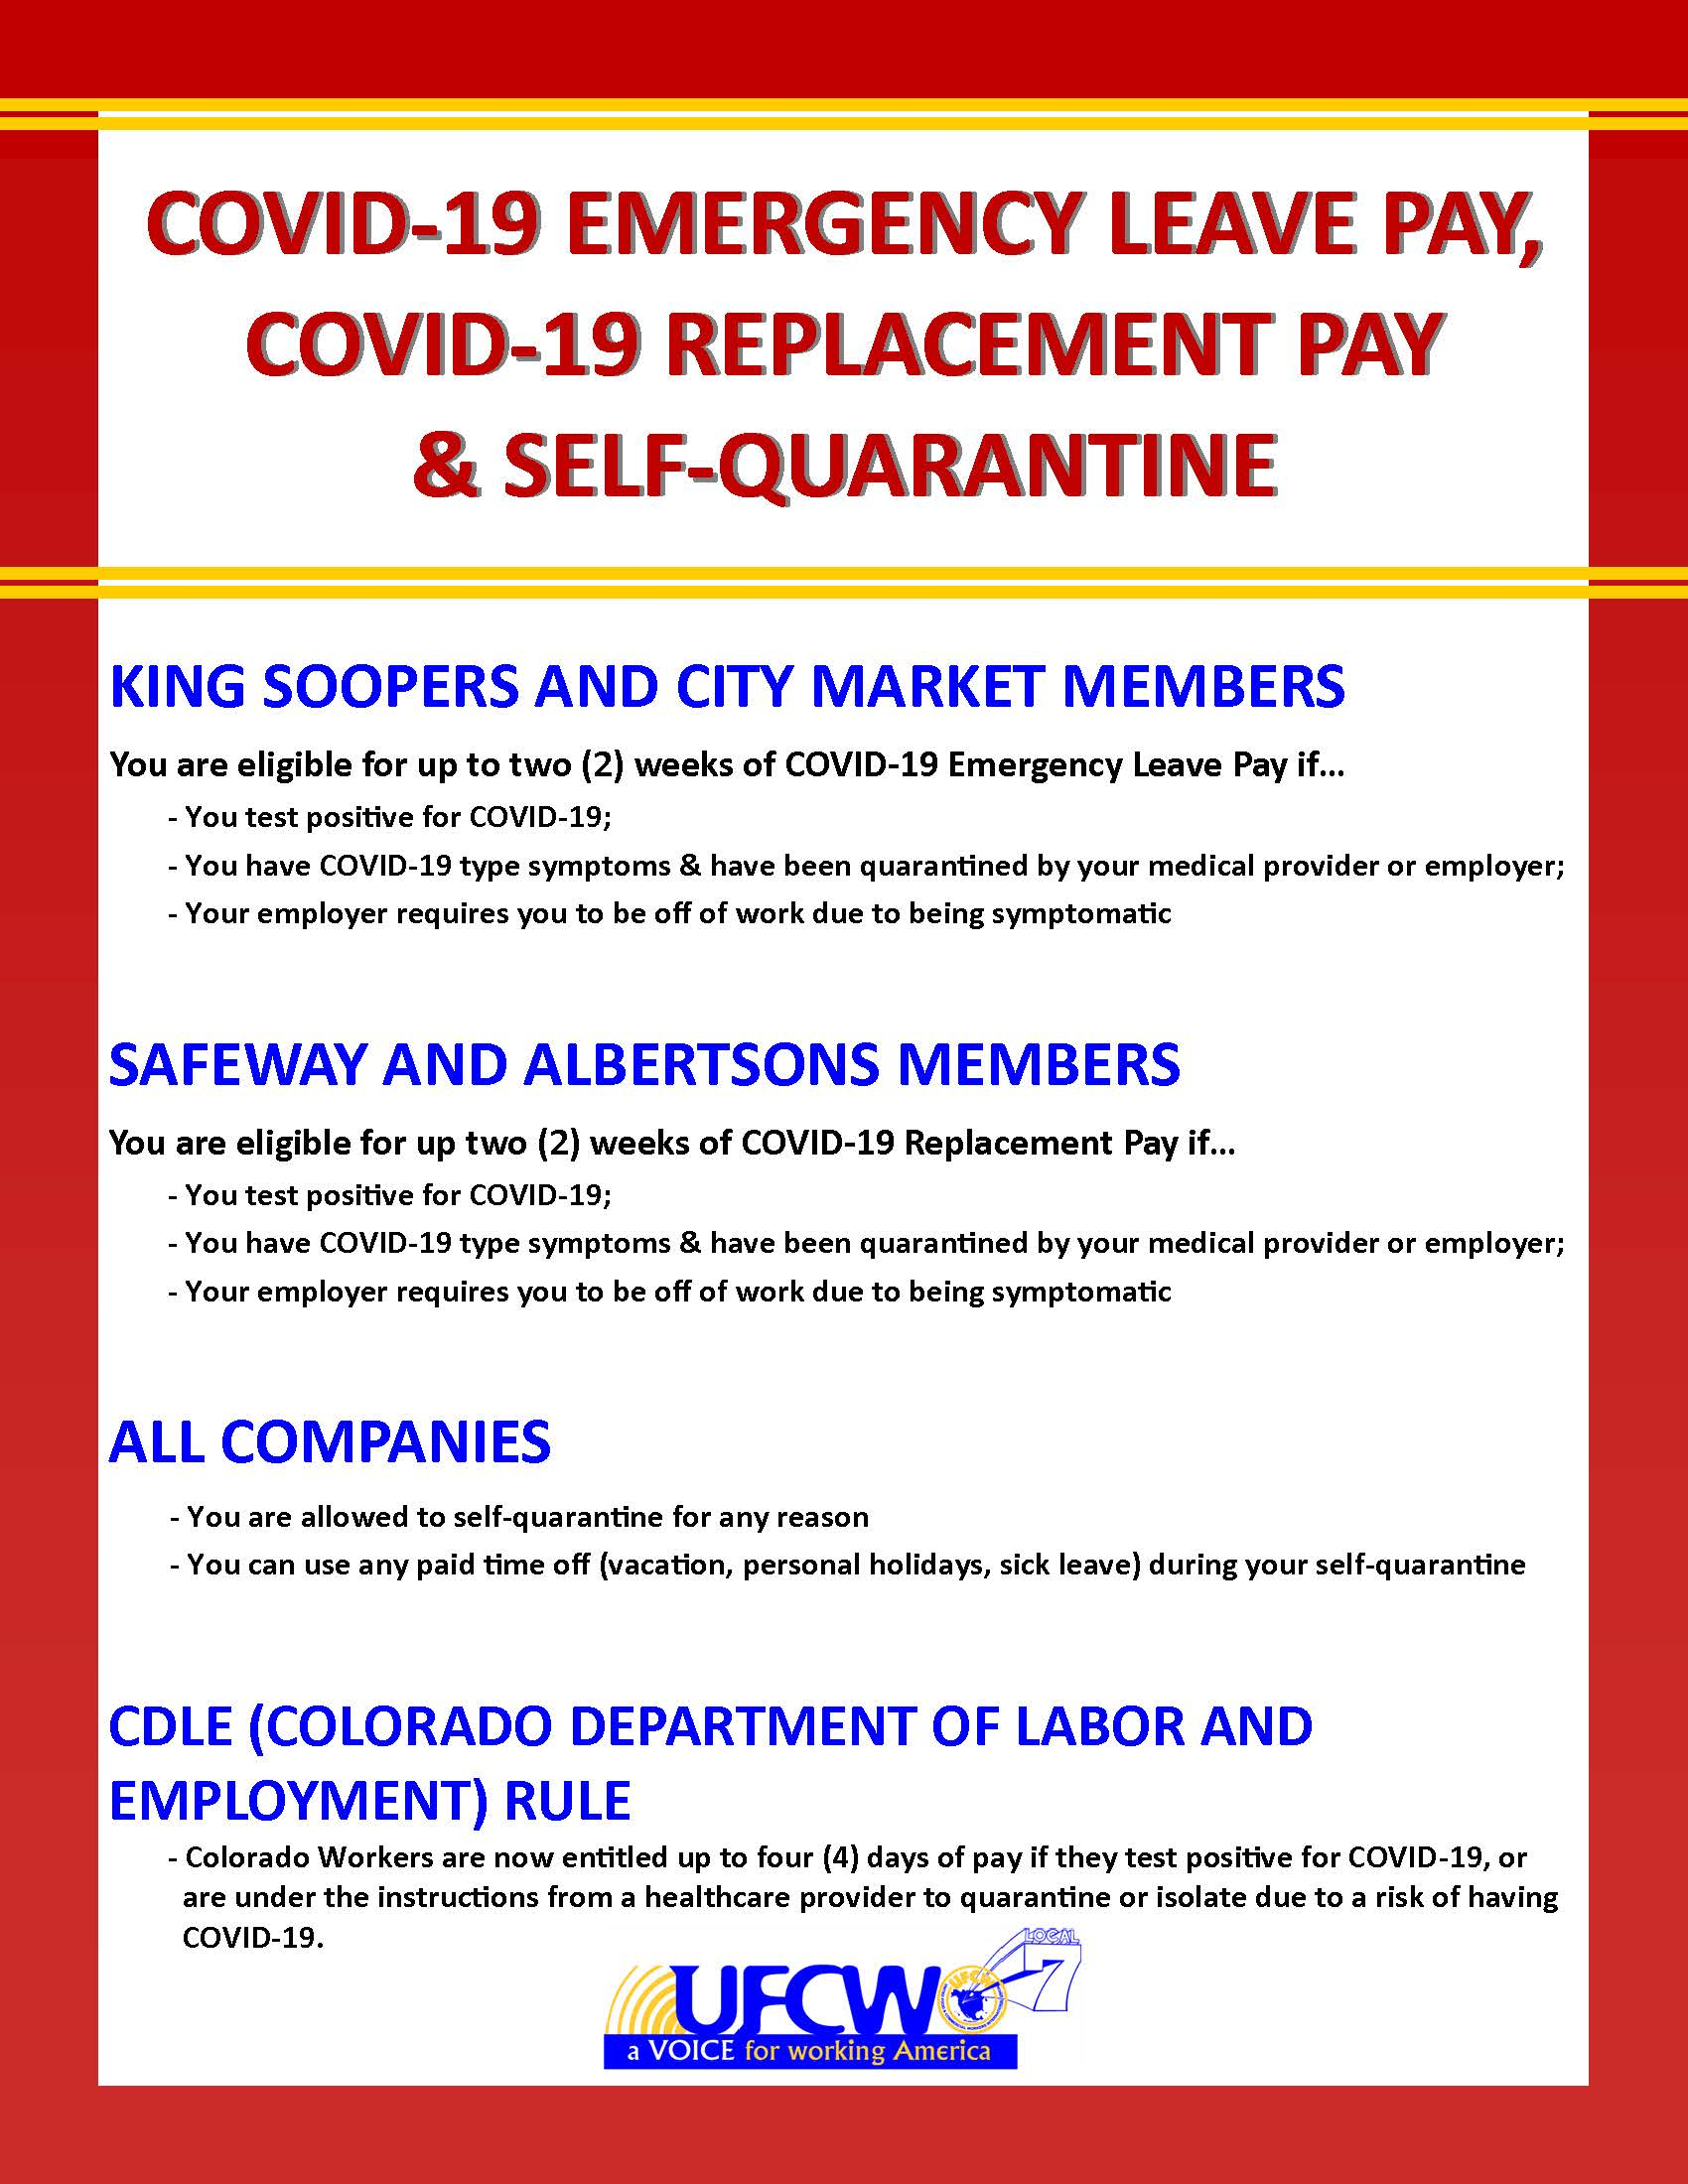 Emergency Leave Pay, Replacement Pay & Self Quarantine